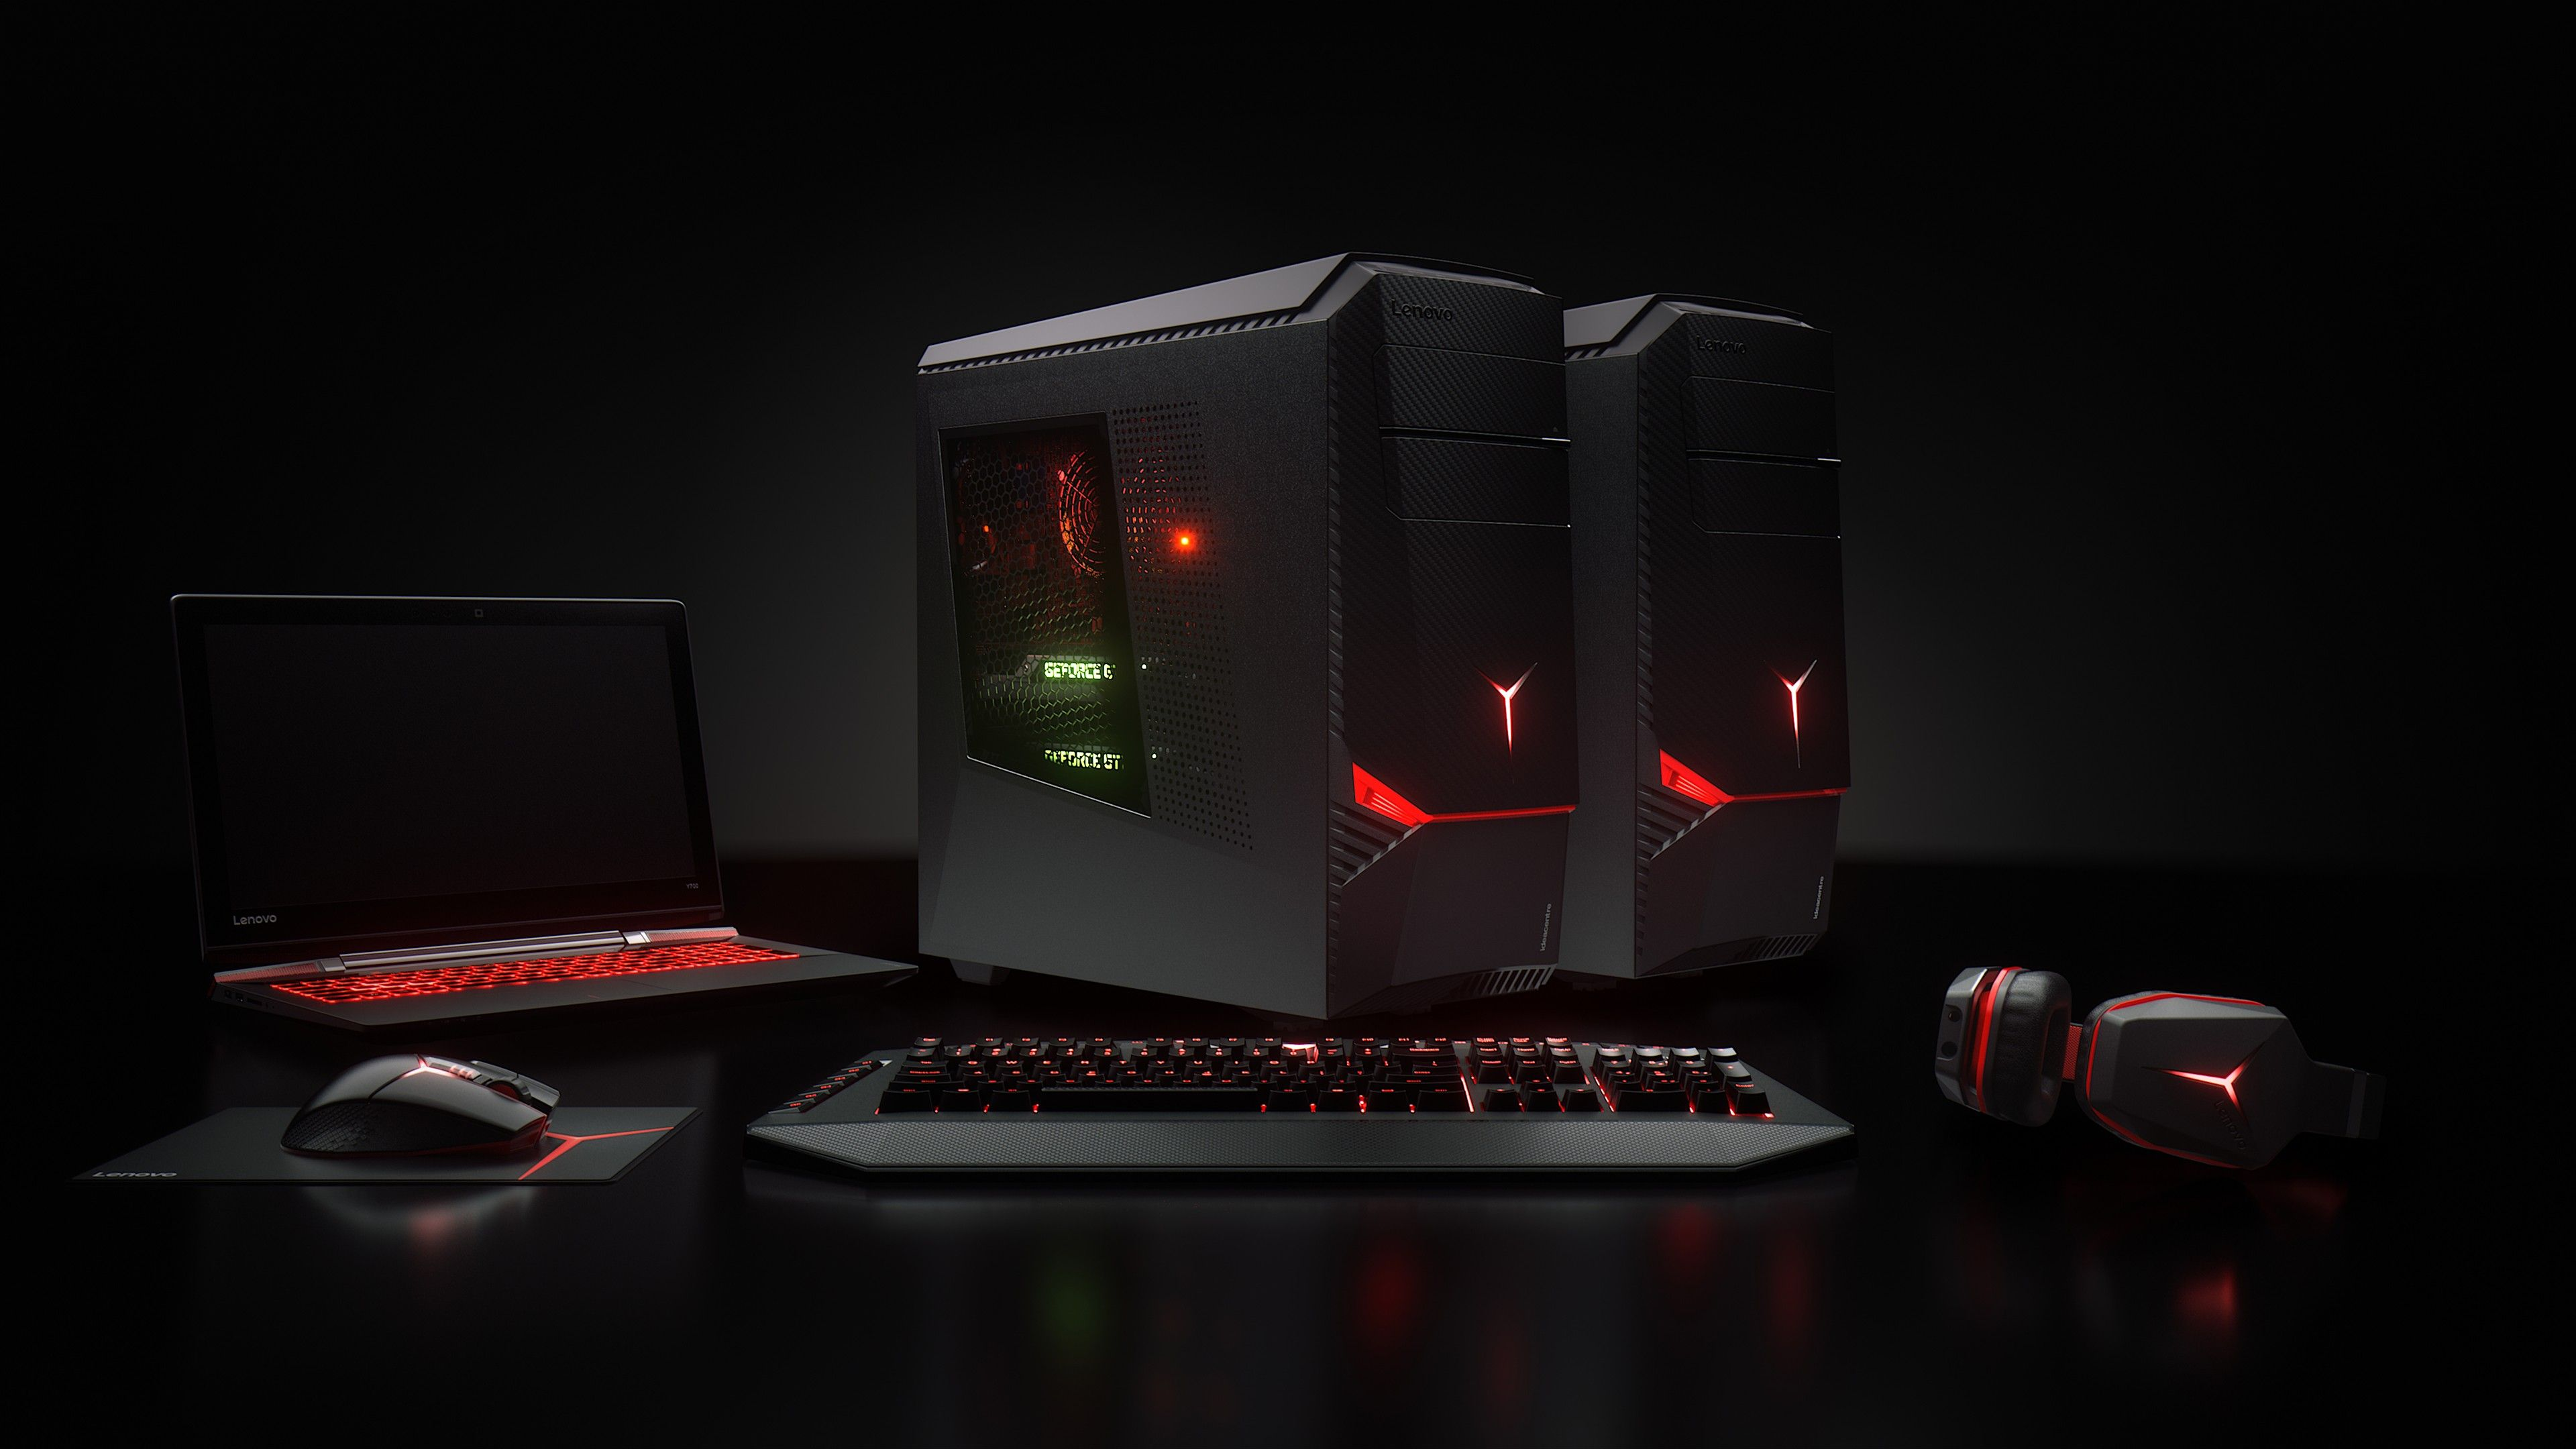 Gaming Computer Wallpapers Top Free Gaming Computer Backgrounds Wallpaperaccess